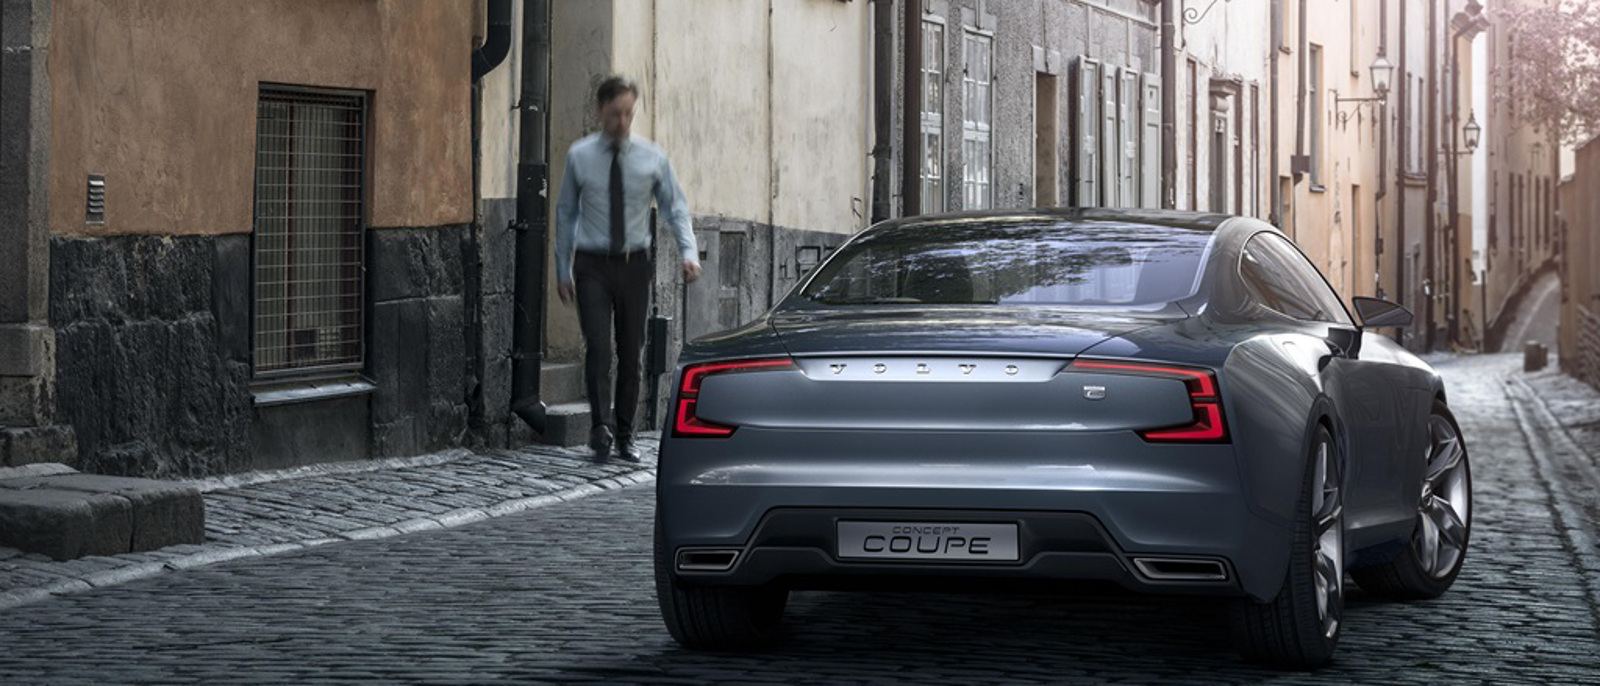 Volvo Concept Coupe back view